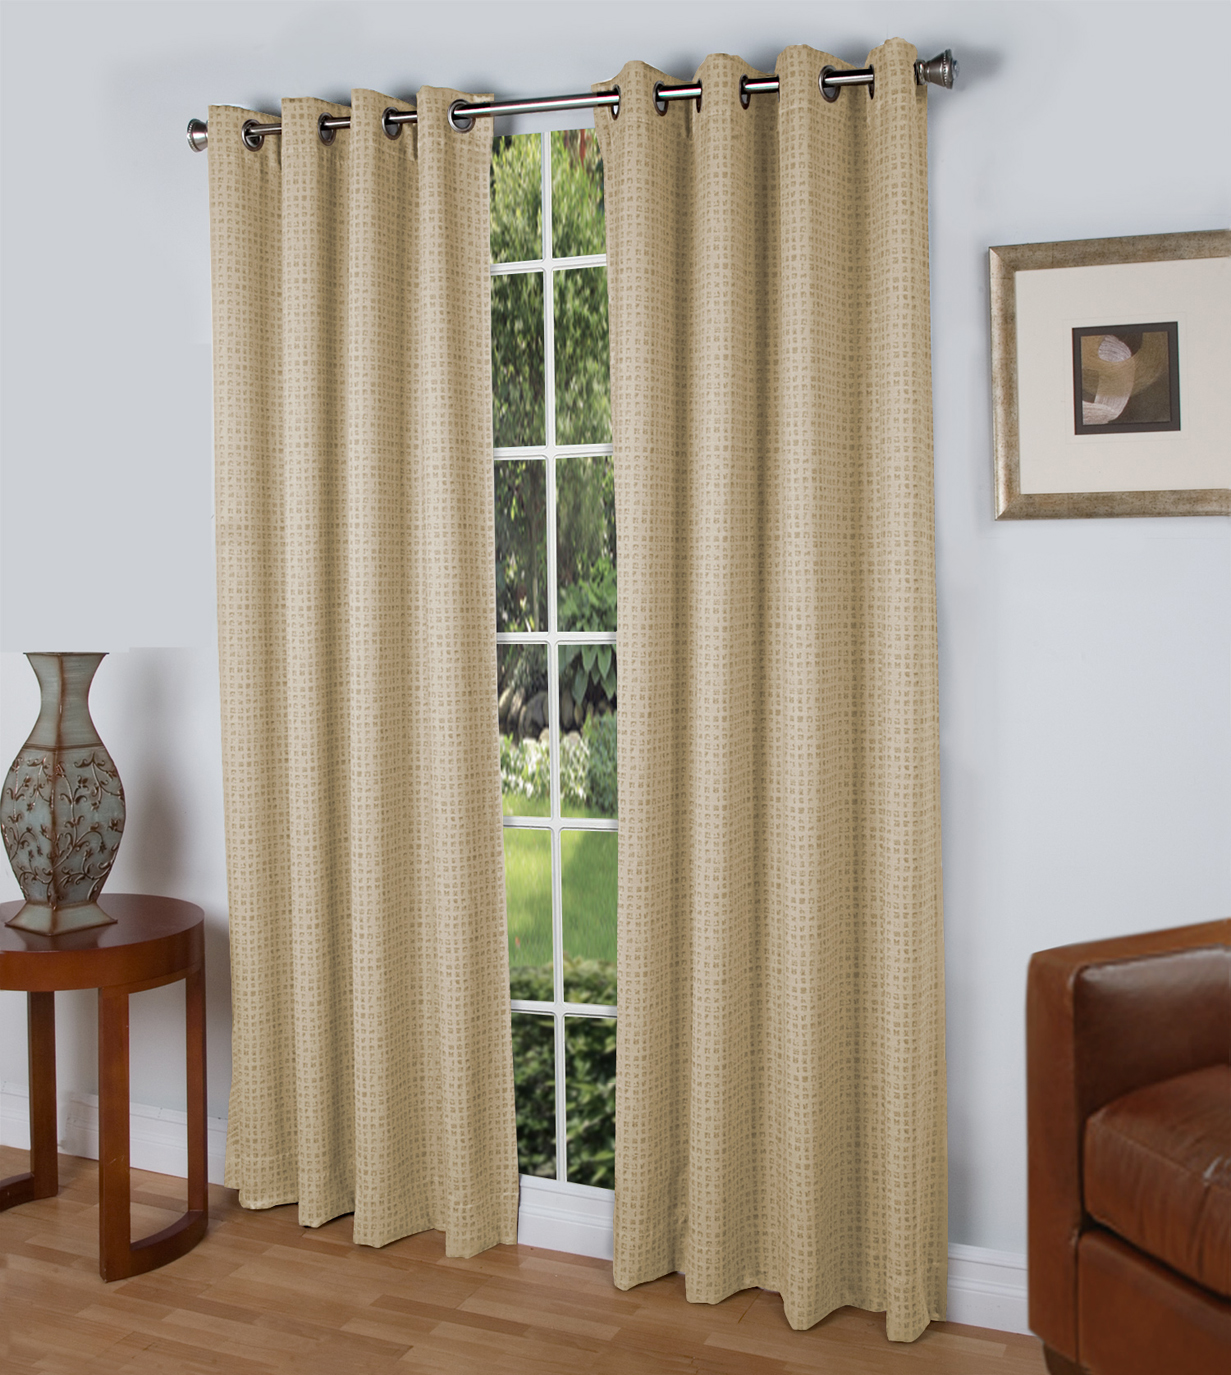 Solid Thermal Insulated Blackout Curtain | Insulated Window Drapes | Thermal Insulated Curtains